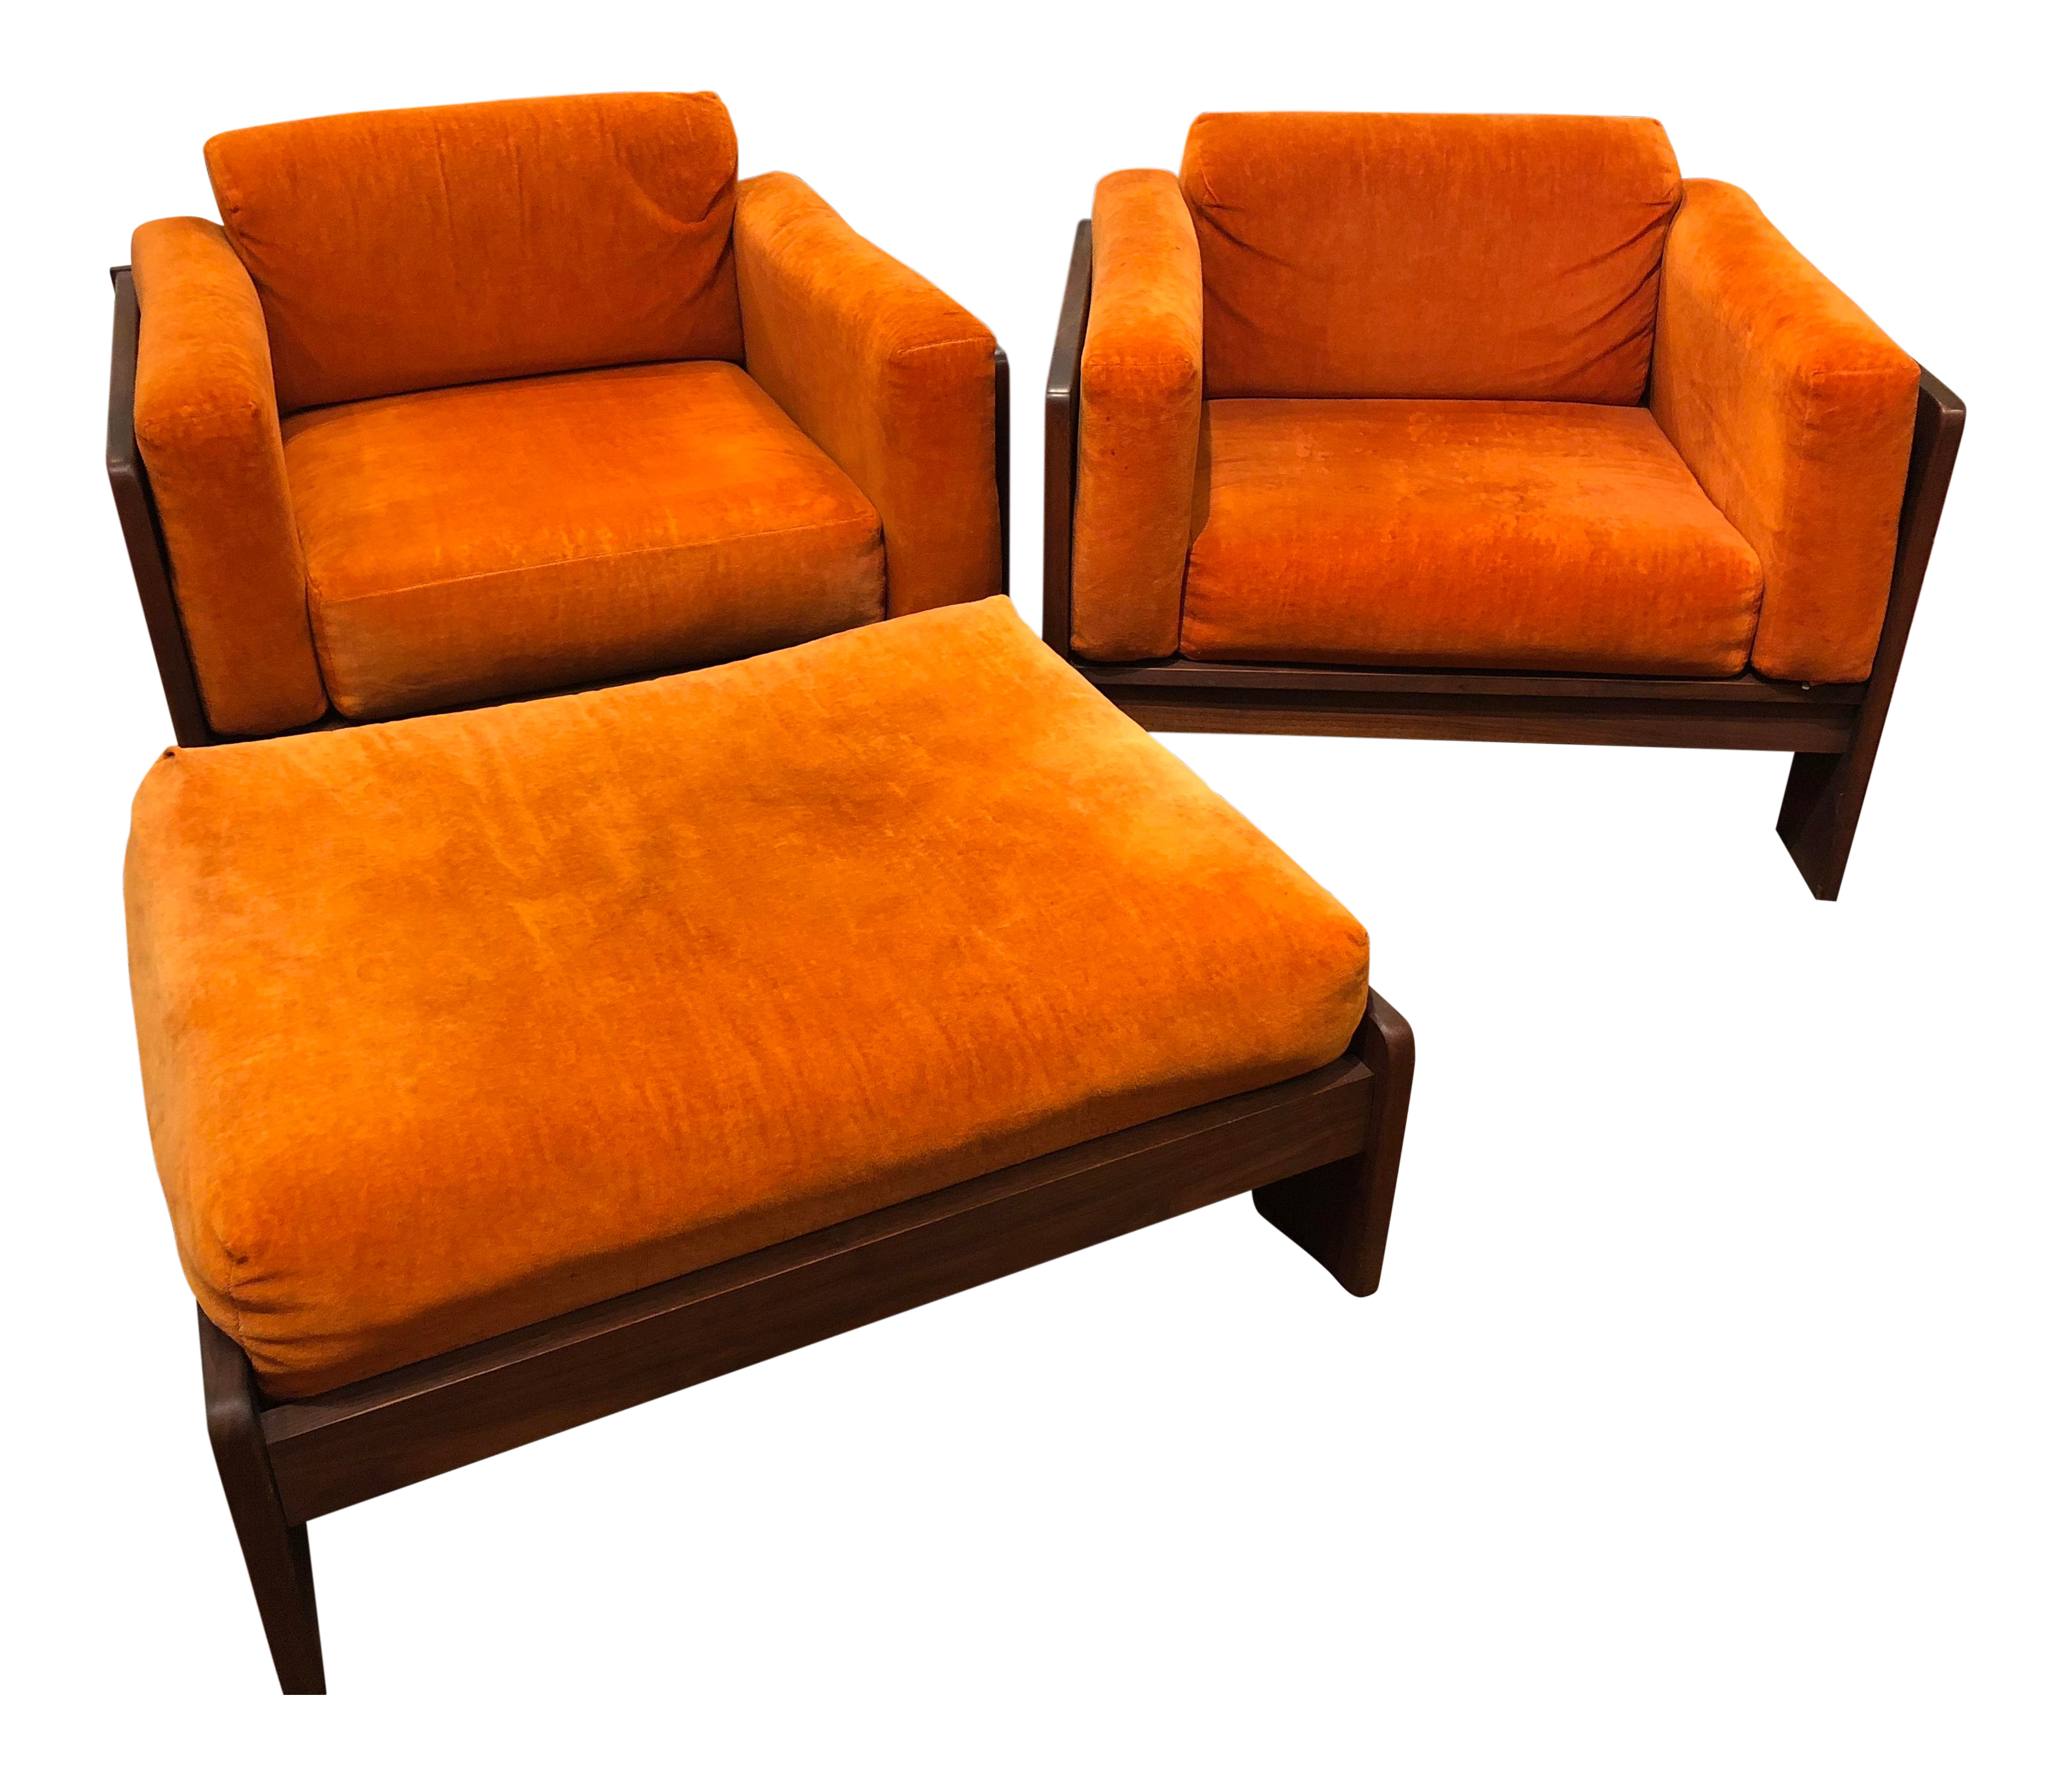 Pair Of Mod Pearsall Style Orange Cube Chairs With Ottoman